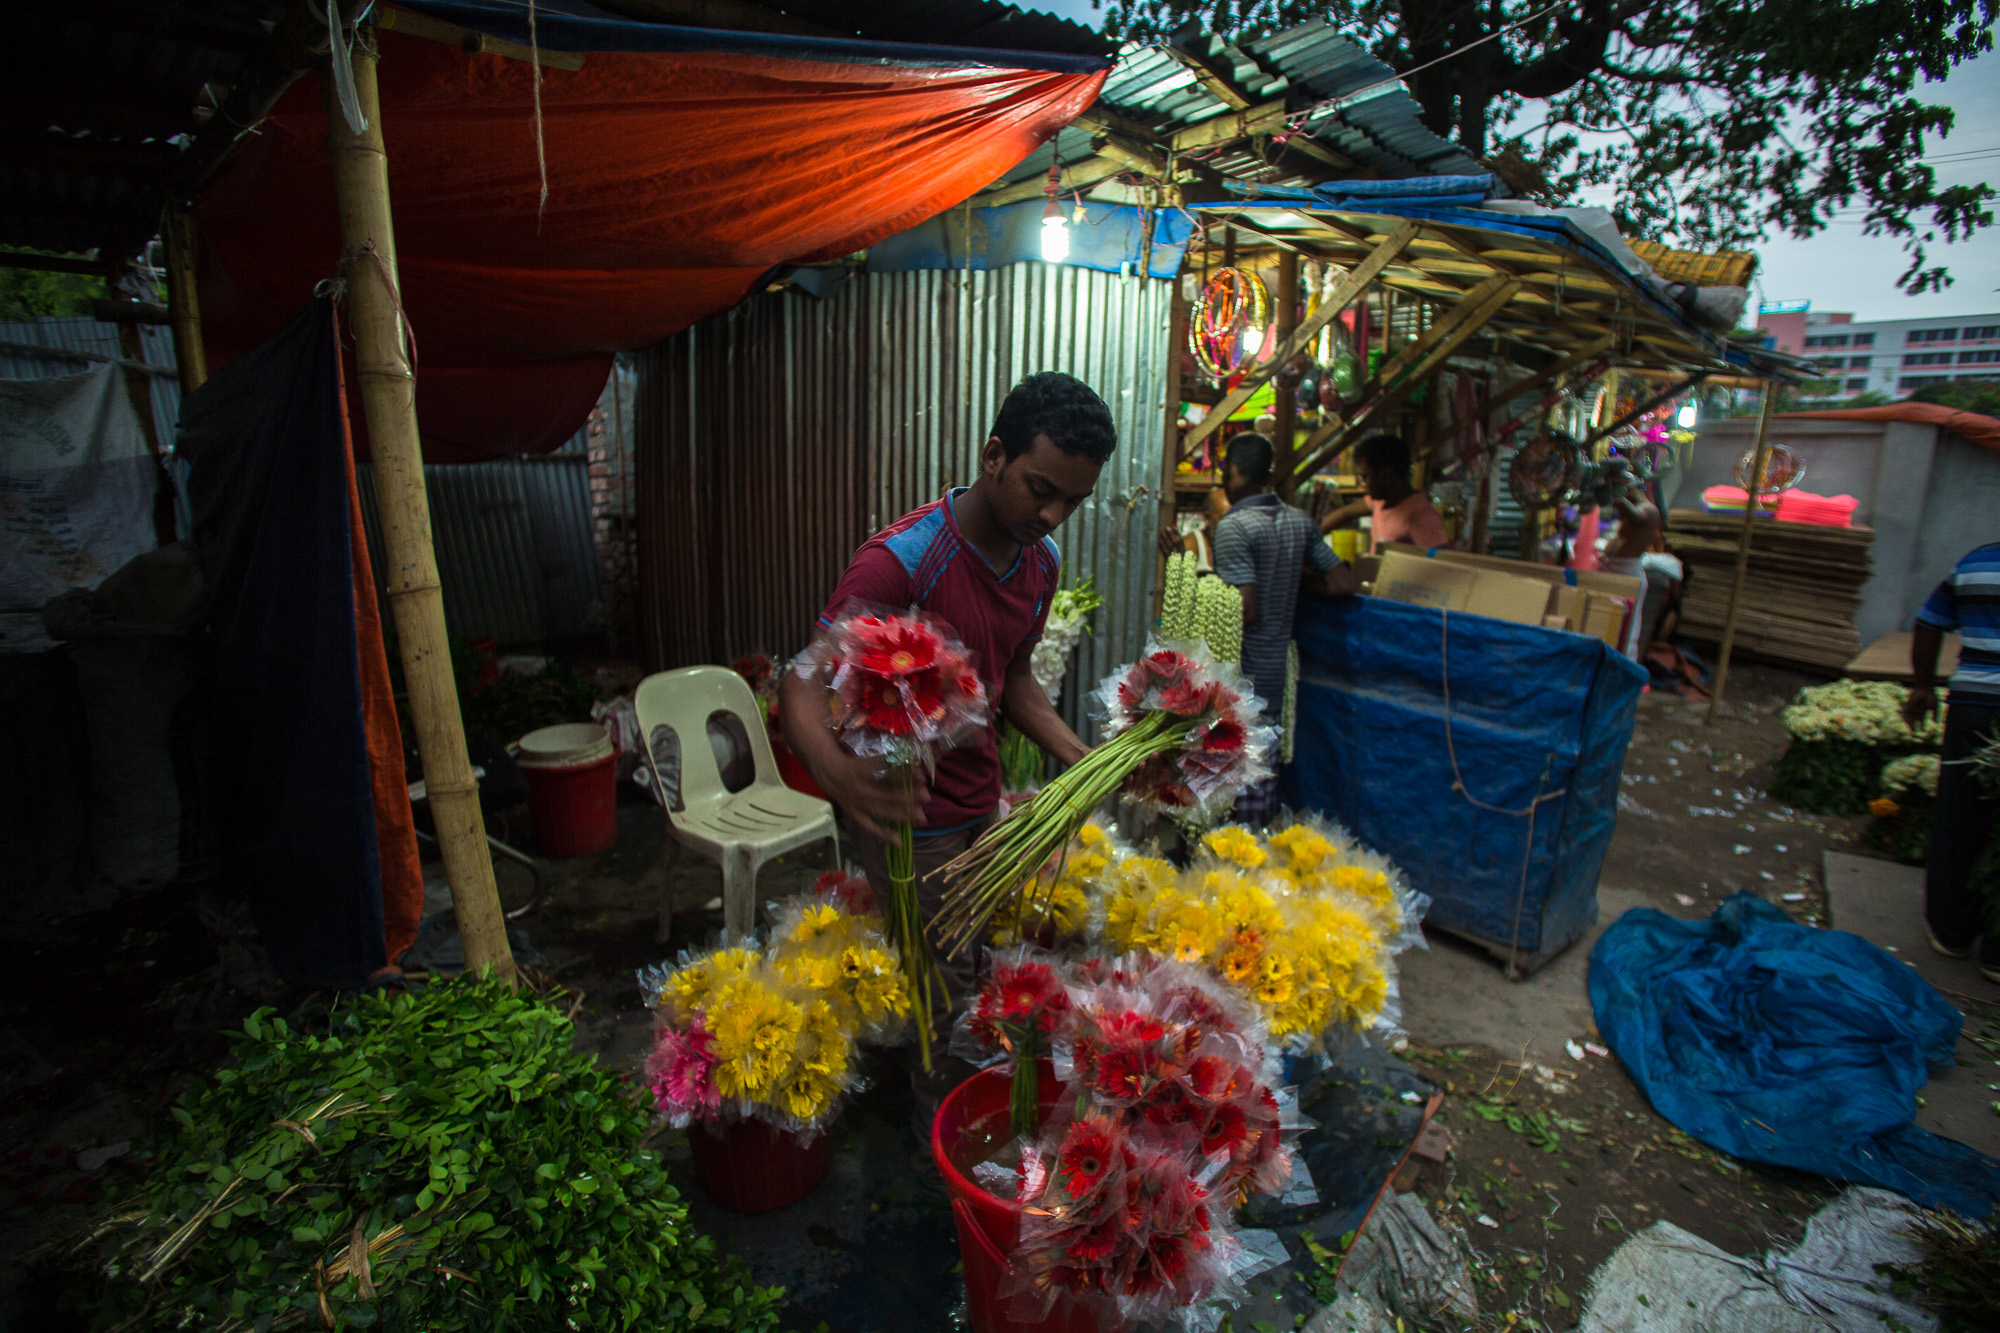 Flowers grown across Bangladesh arrive at the Agargaon Flower Wholesale Market in Dhaka where wholesale buyers purchase them and resell them to boutiques and flower stands throughout the city. Photo by Josh Estey